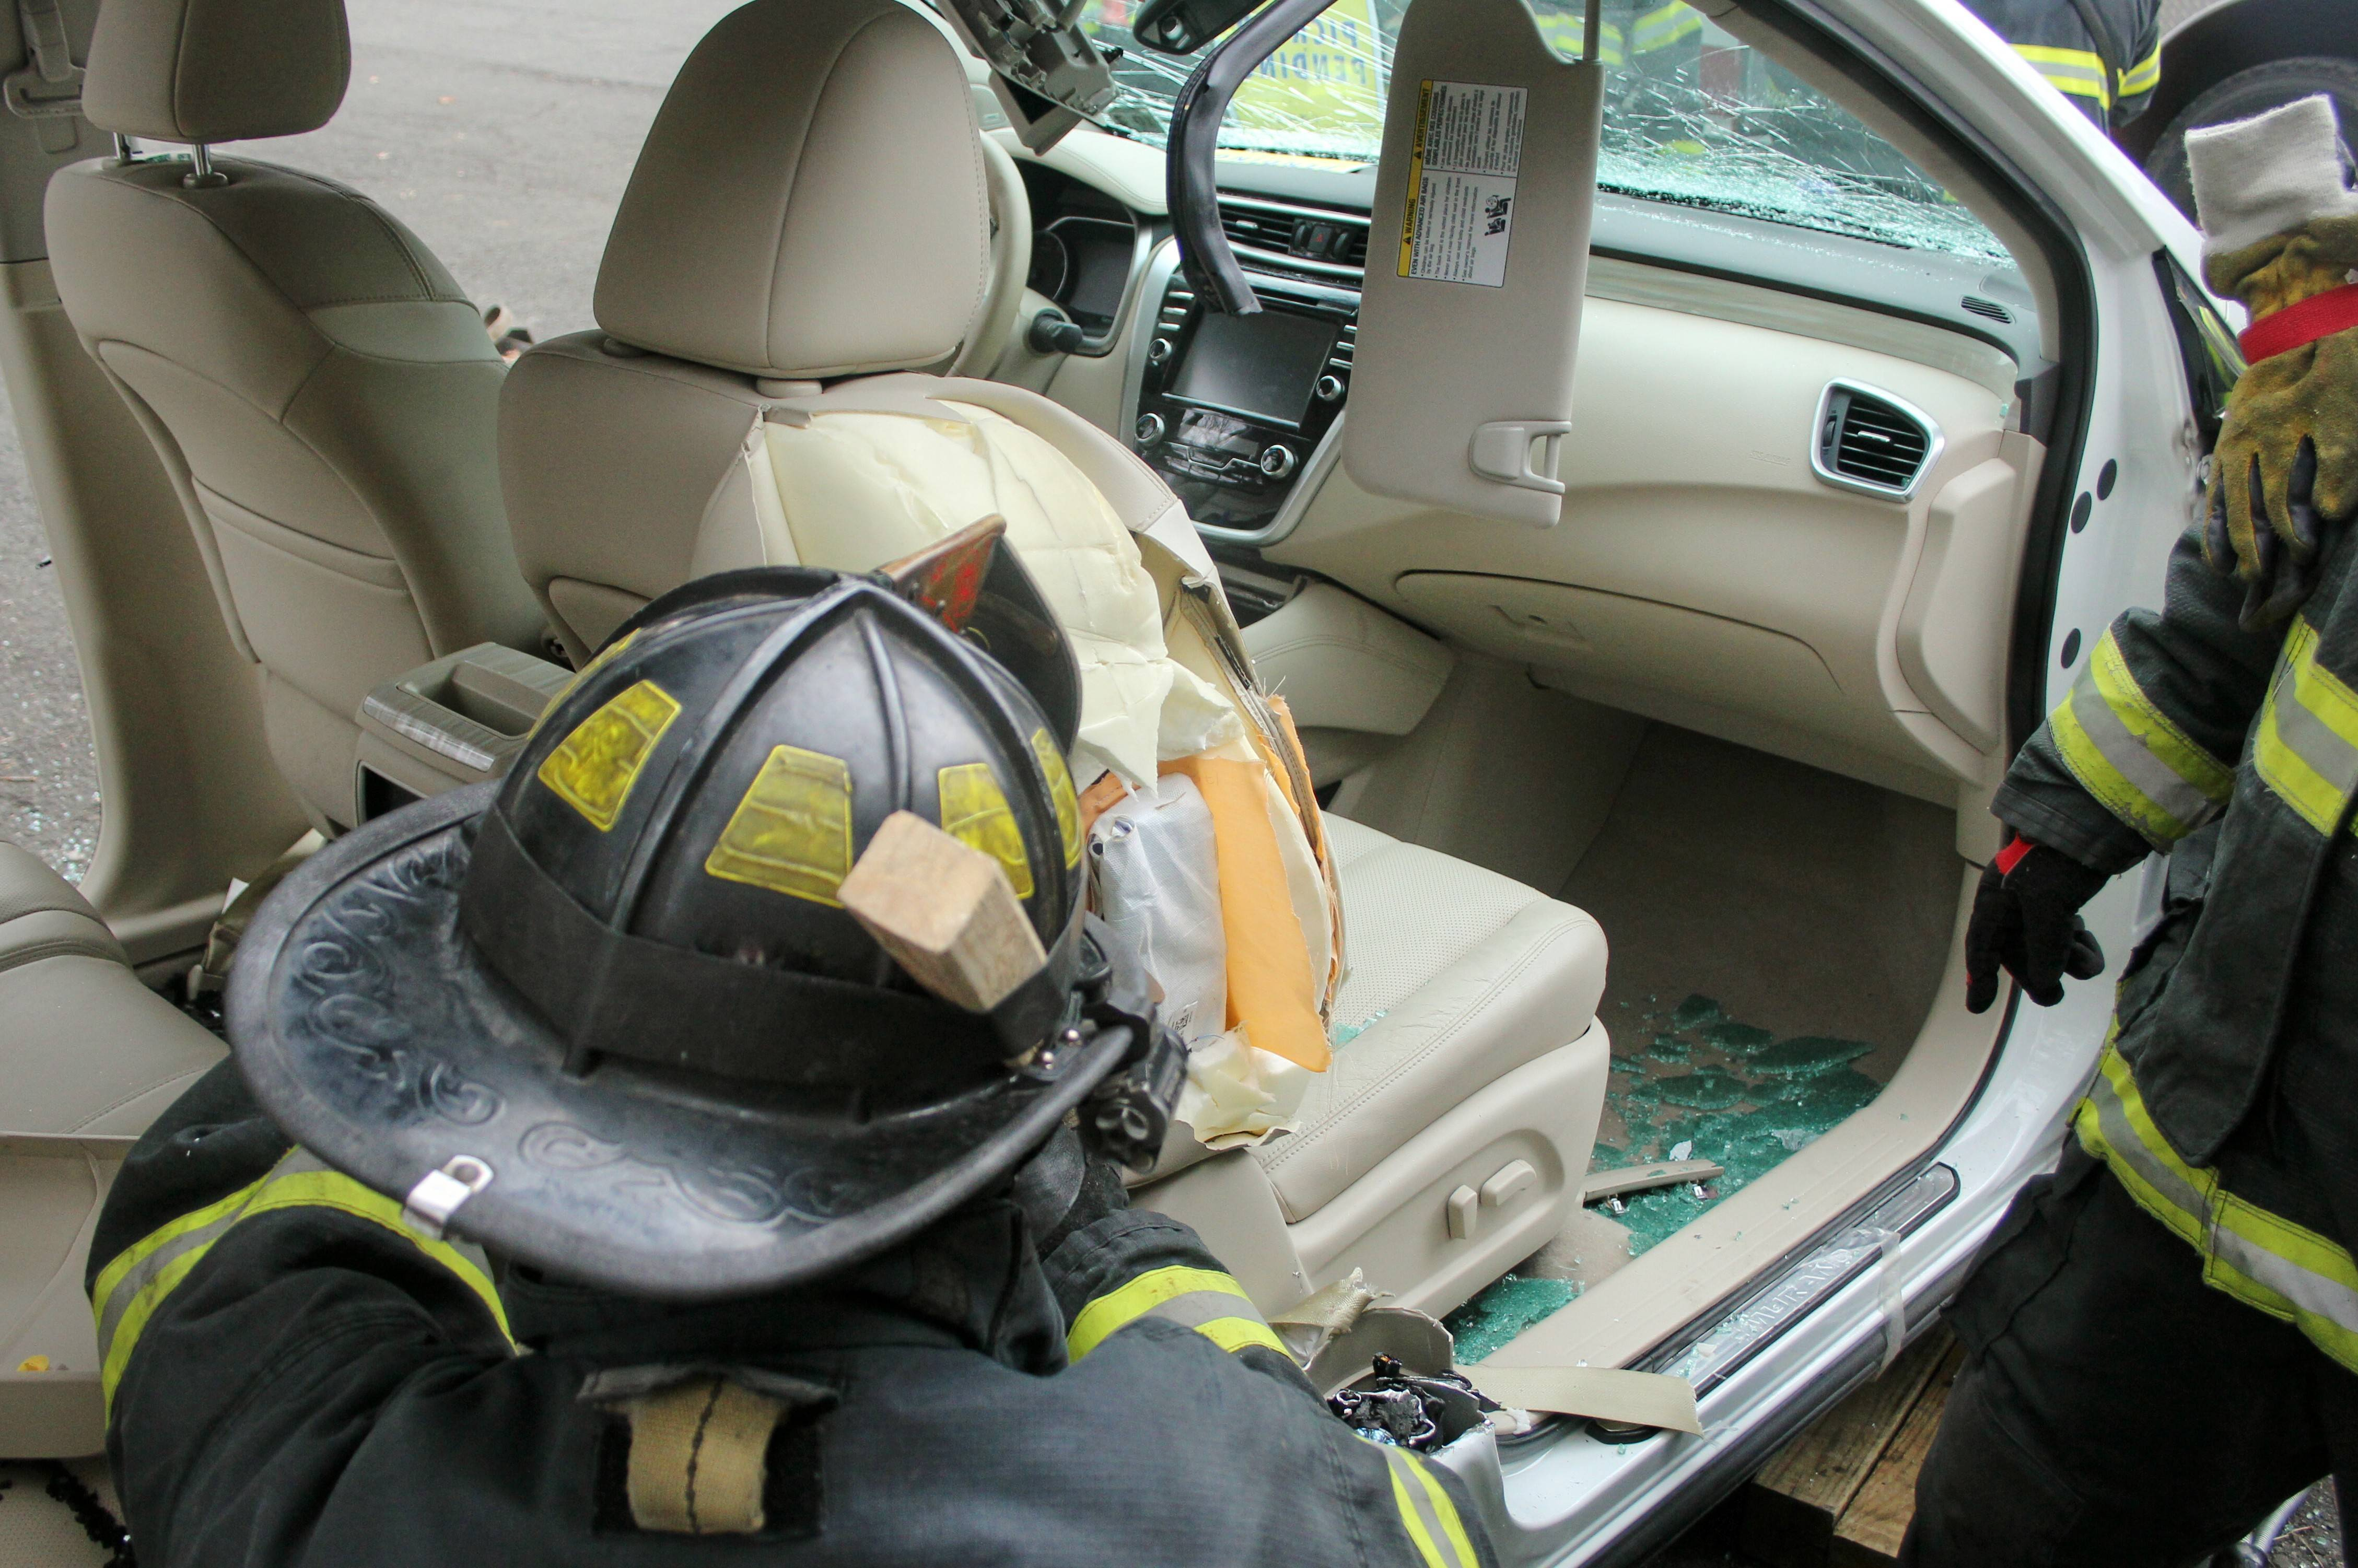 70118fdb8863ebd67f14_Nissan_Murano_Bloomfield_Fire_Department_Training_047.jpg